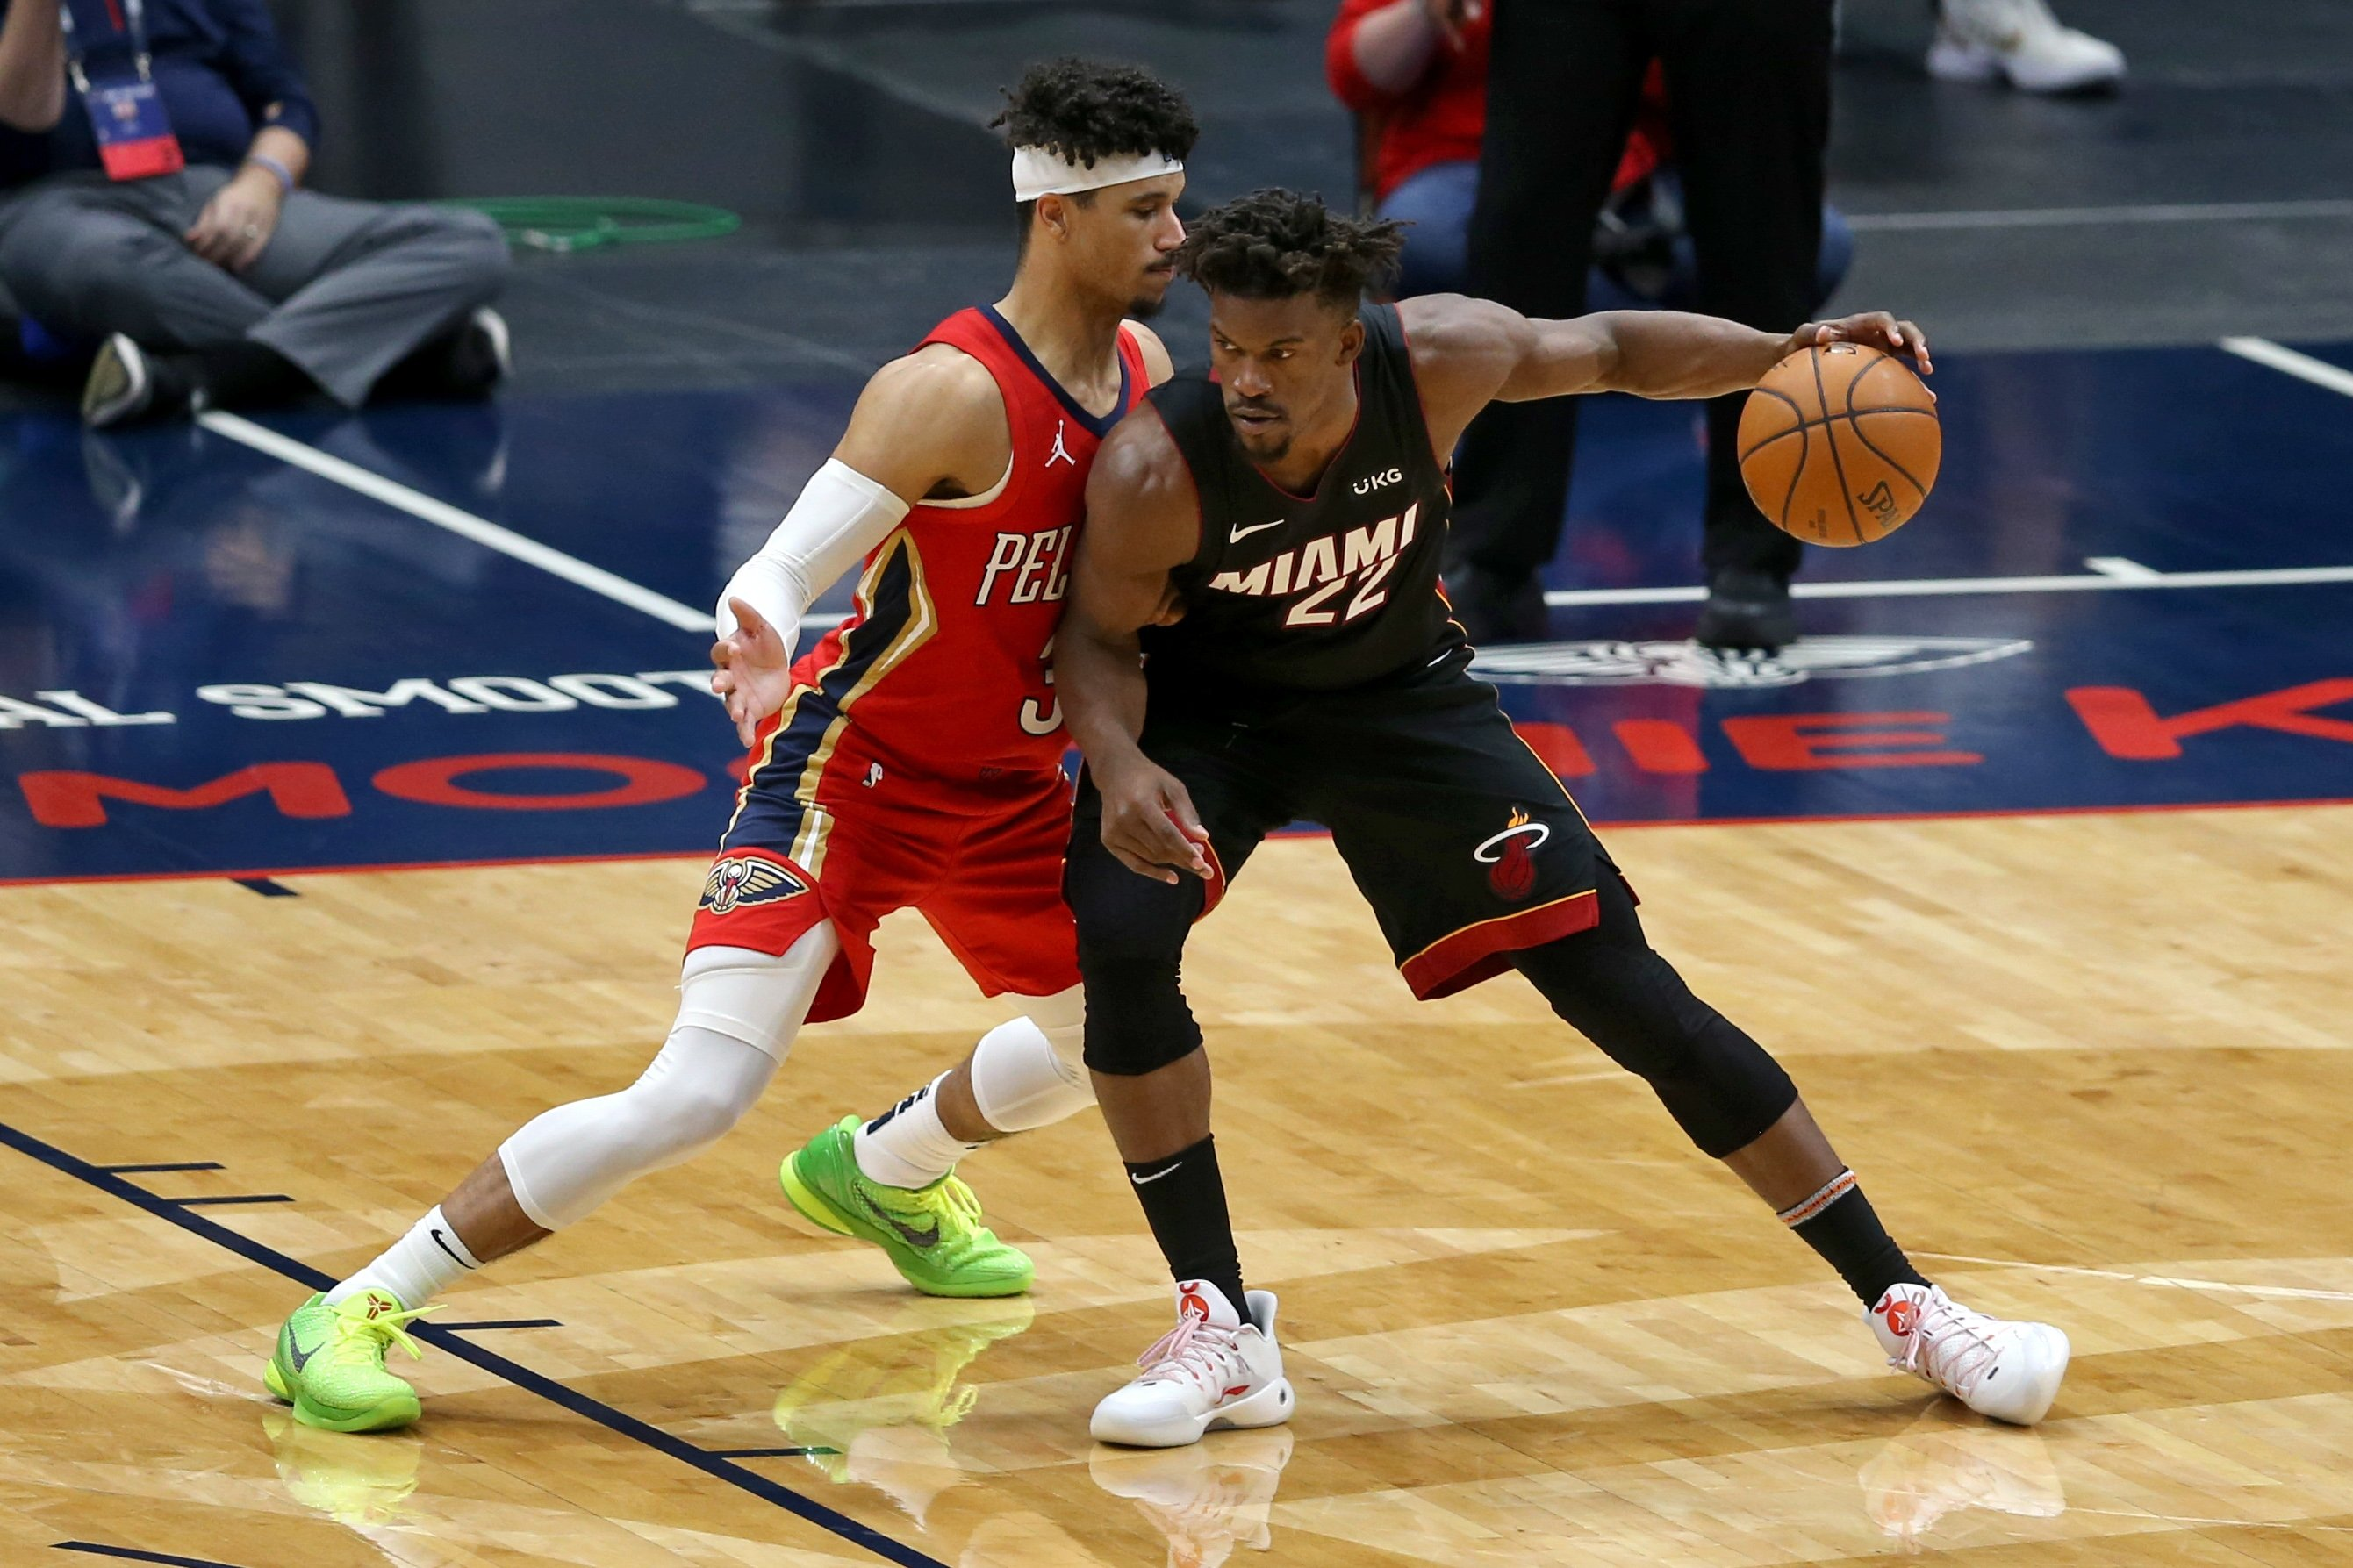 New Orleans Pelicans guard Josh Hart (L) defends Miami Heat forward Jimmy Butler in an NBA game at the Smoothie King Center, Mar 4, 2021. (Reuters Photo)